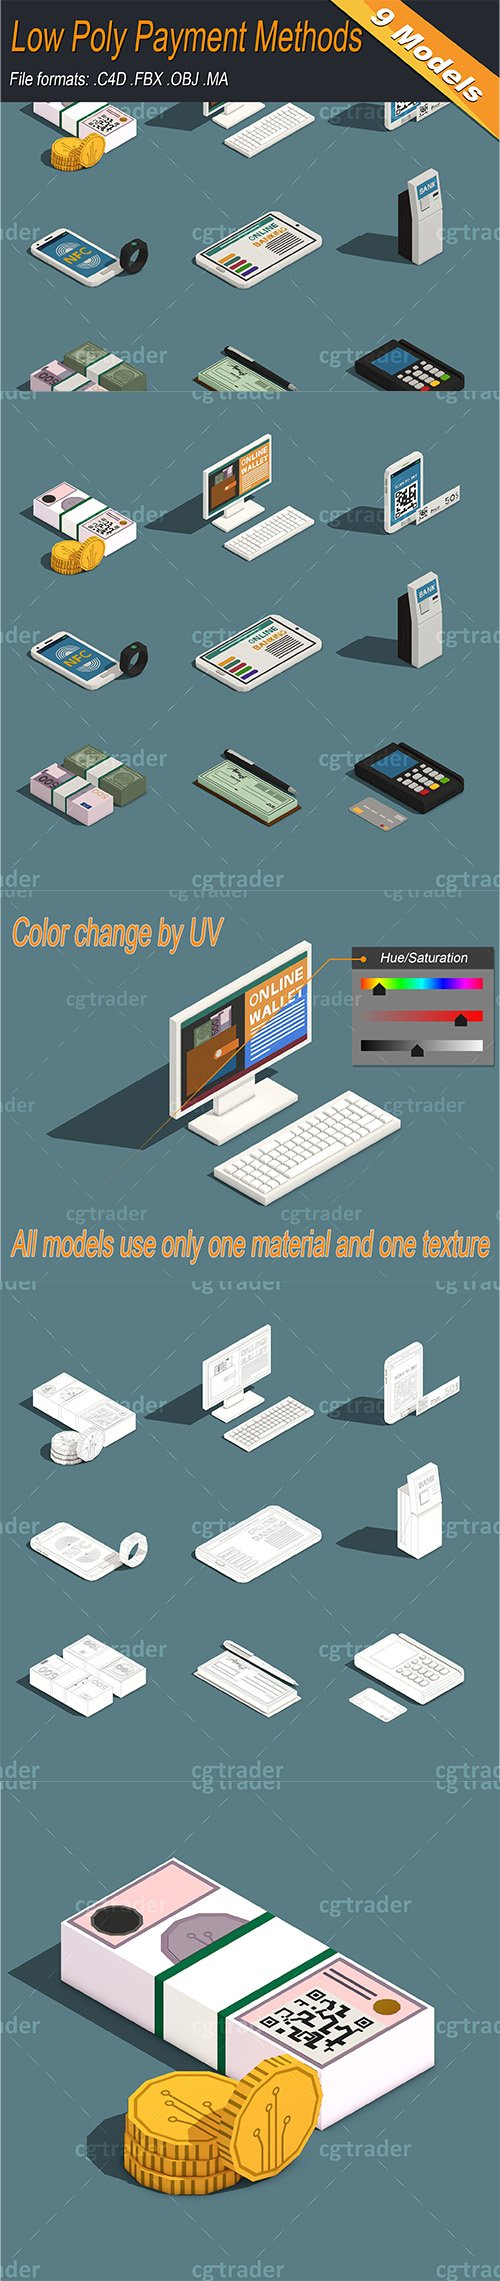 Low Poly Payment Methods Isometric Low-poly 3D model